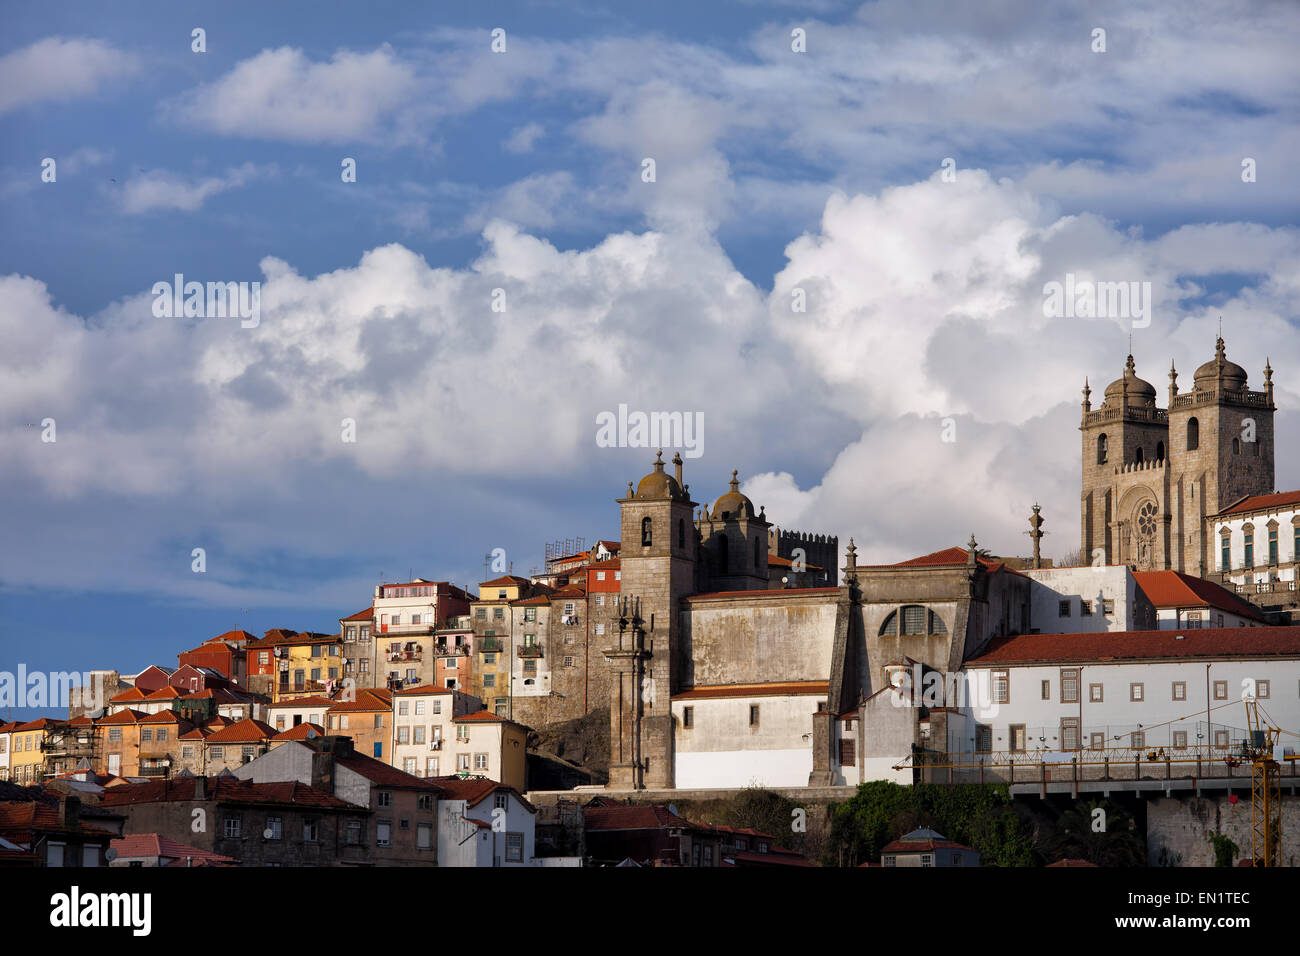 Oporto, Portugal, Old Town skyline in the historic city centre. - Stock Image